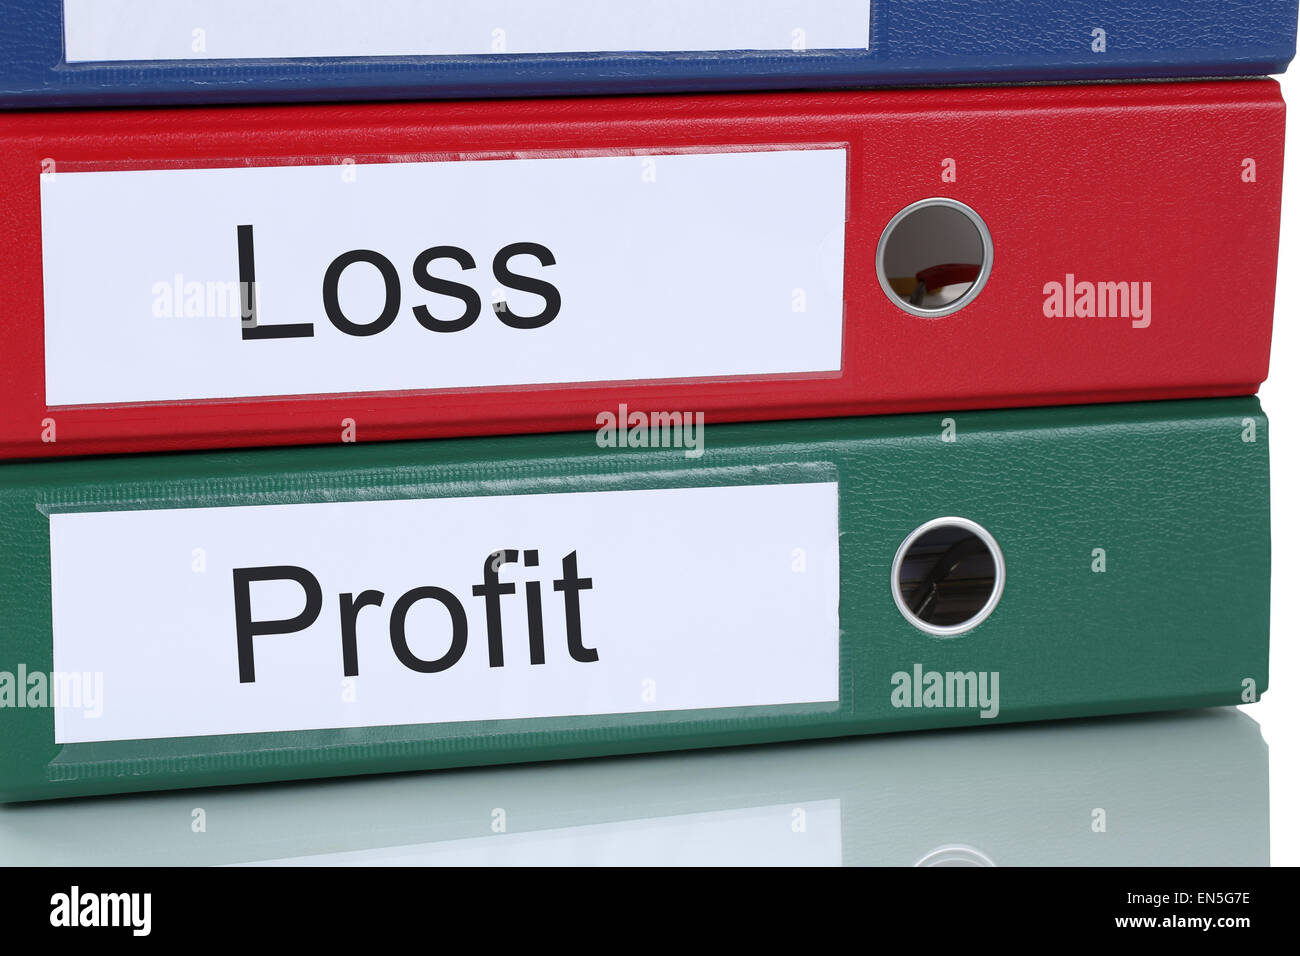 Loss and profit finances in company business concept - Stock Image